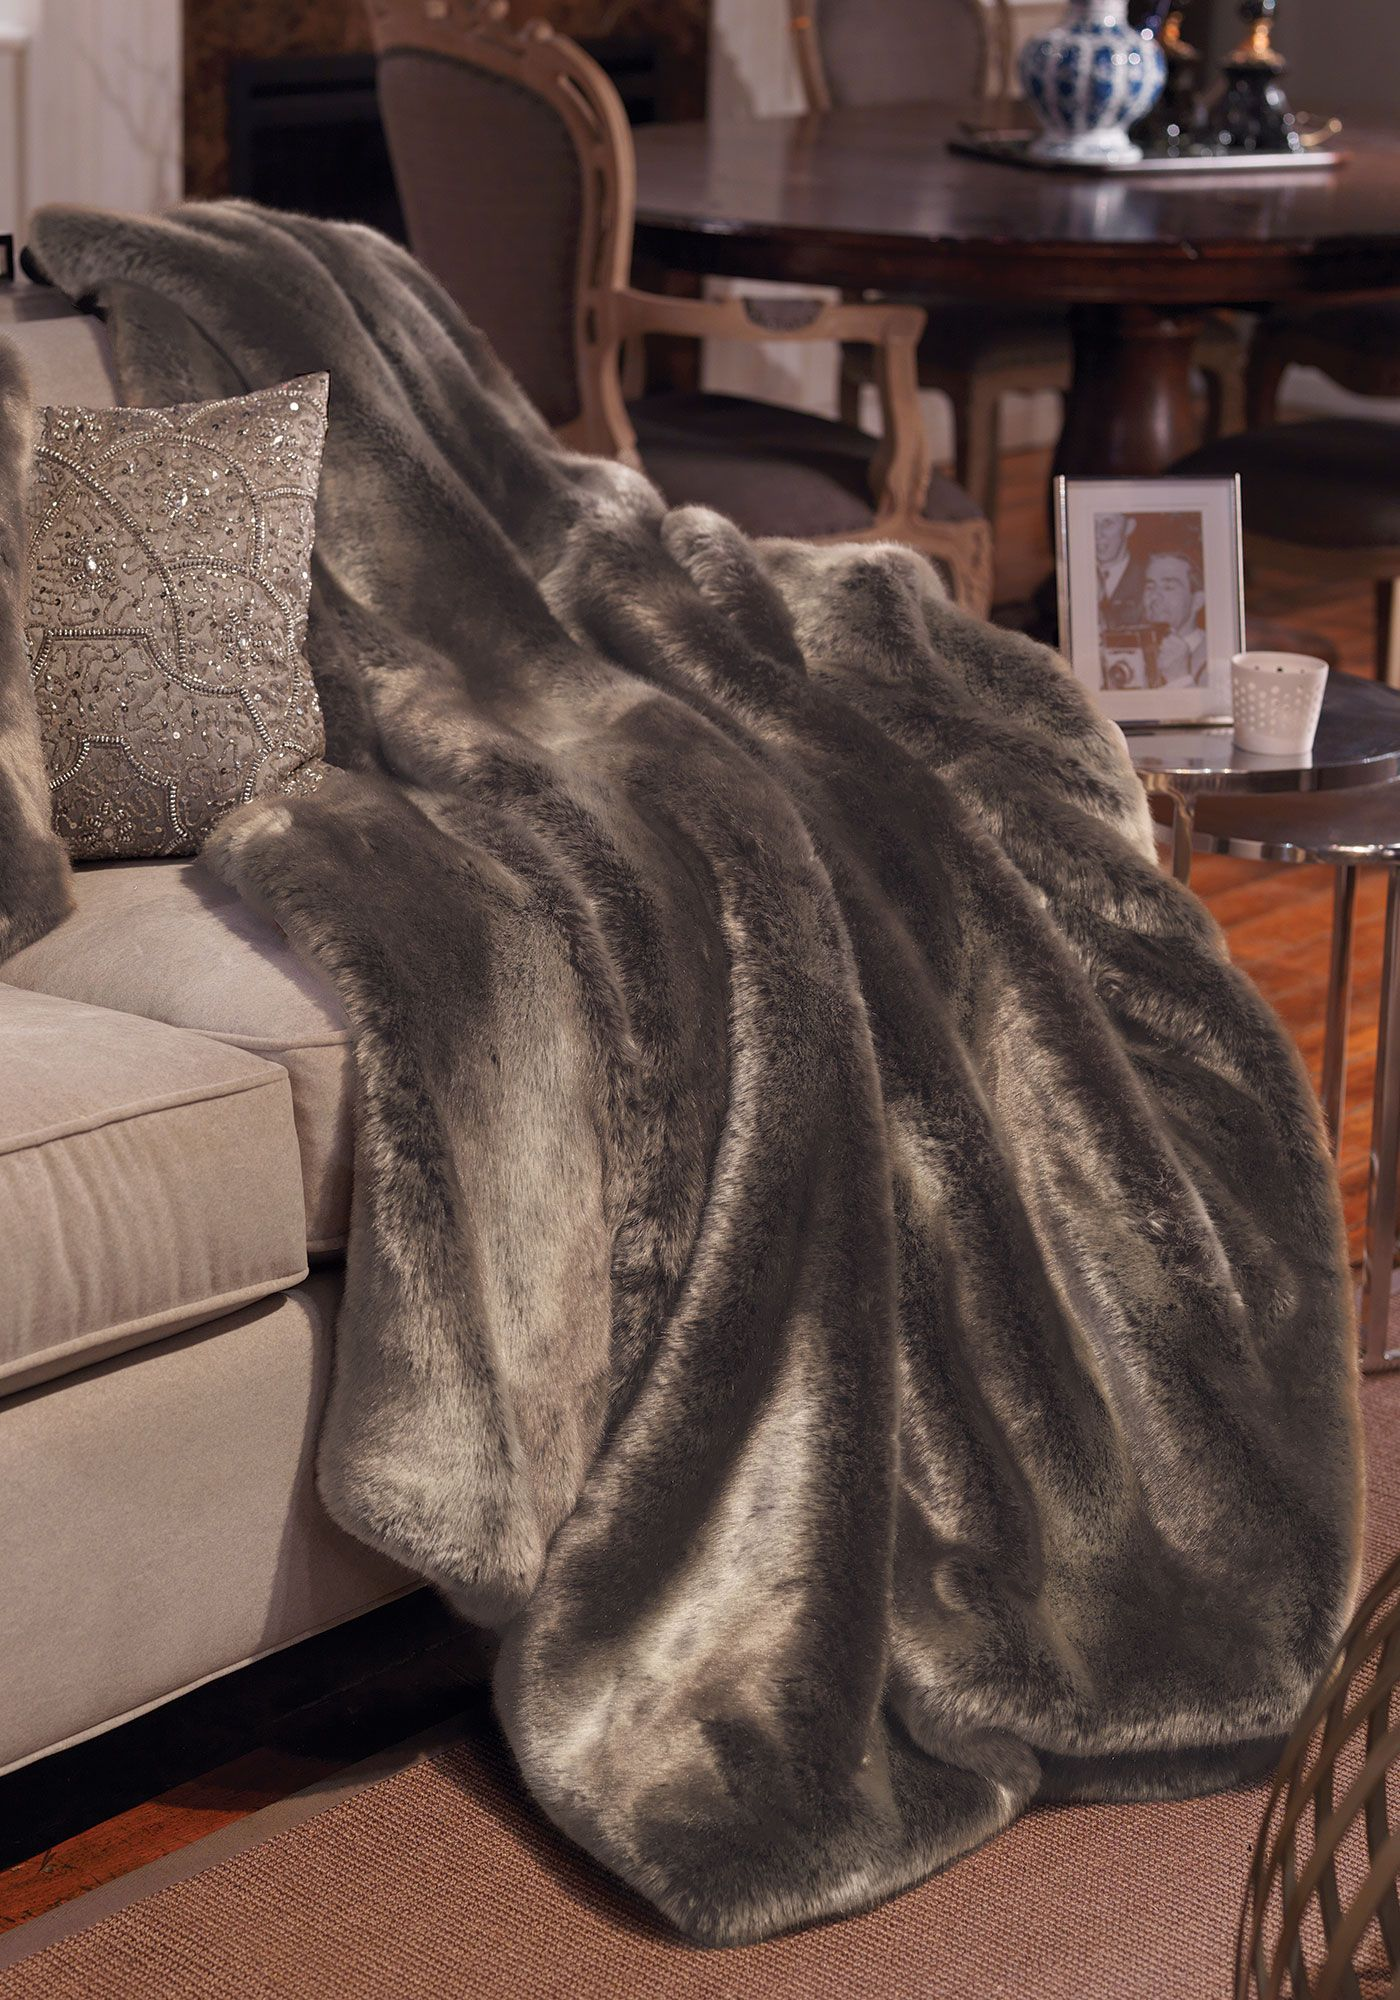 Fur Throws Fur Throw Faux Fur Throws Faux Fur Throw Throws For Couch Throws For Sofa Decorative Throws Faux Fur Throw Fur Throw Blanket Faux Fur Blanket